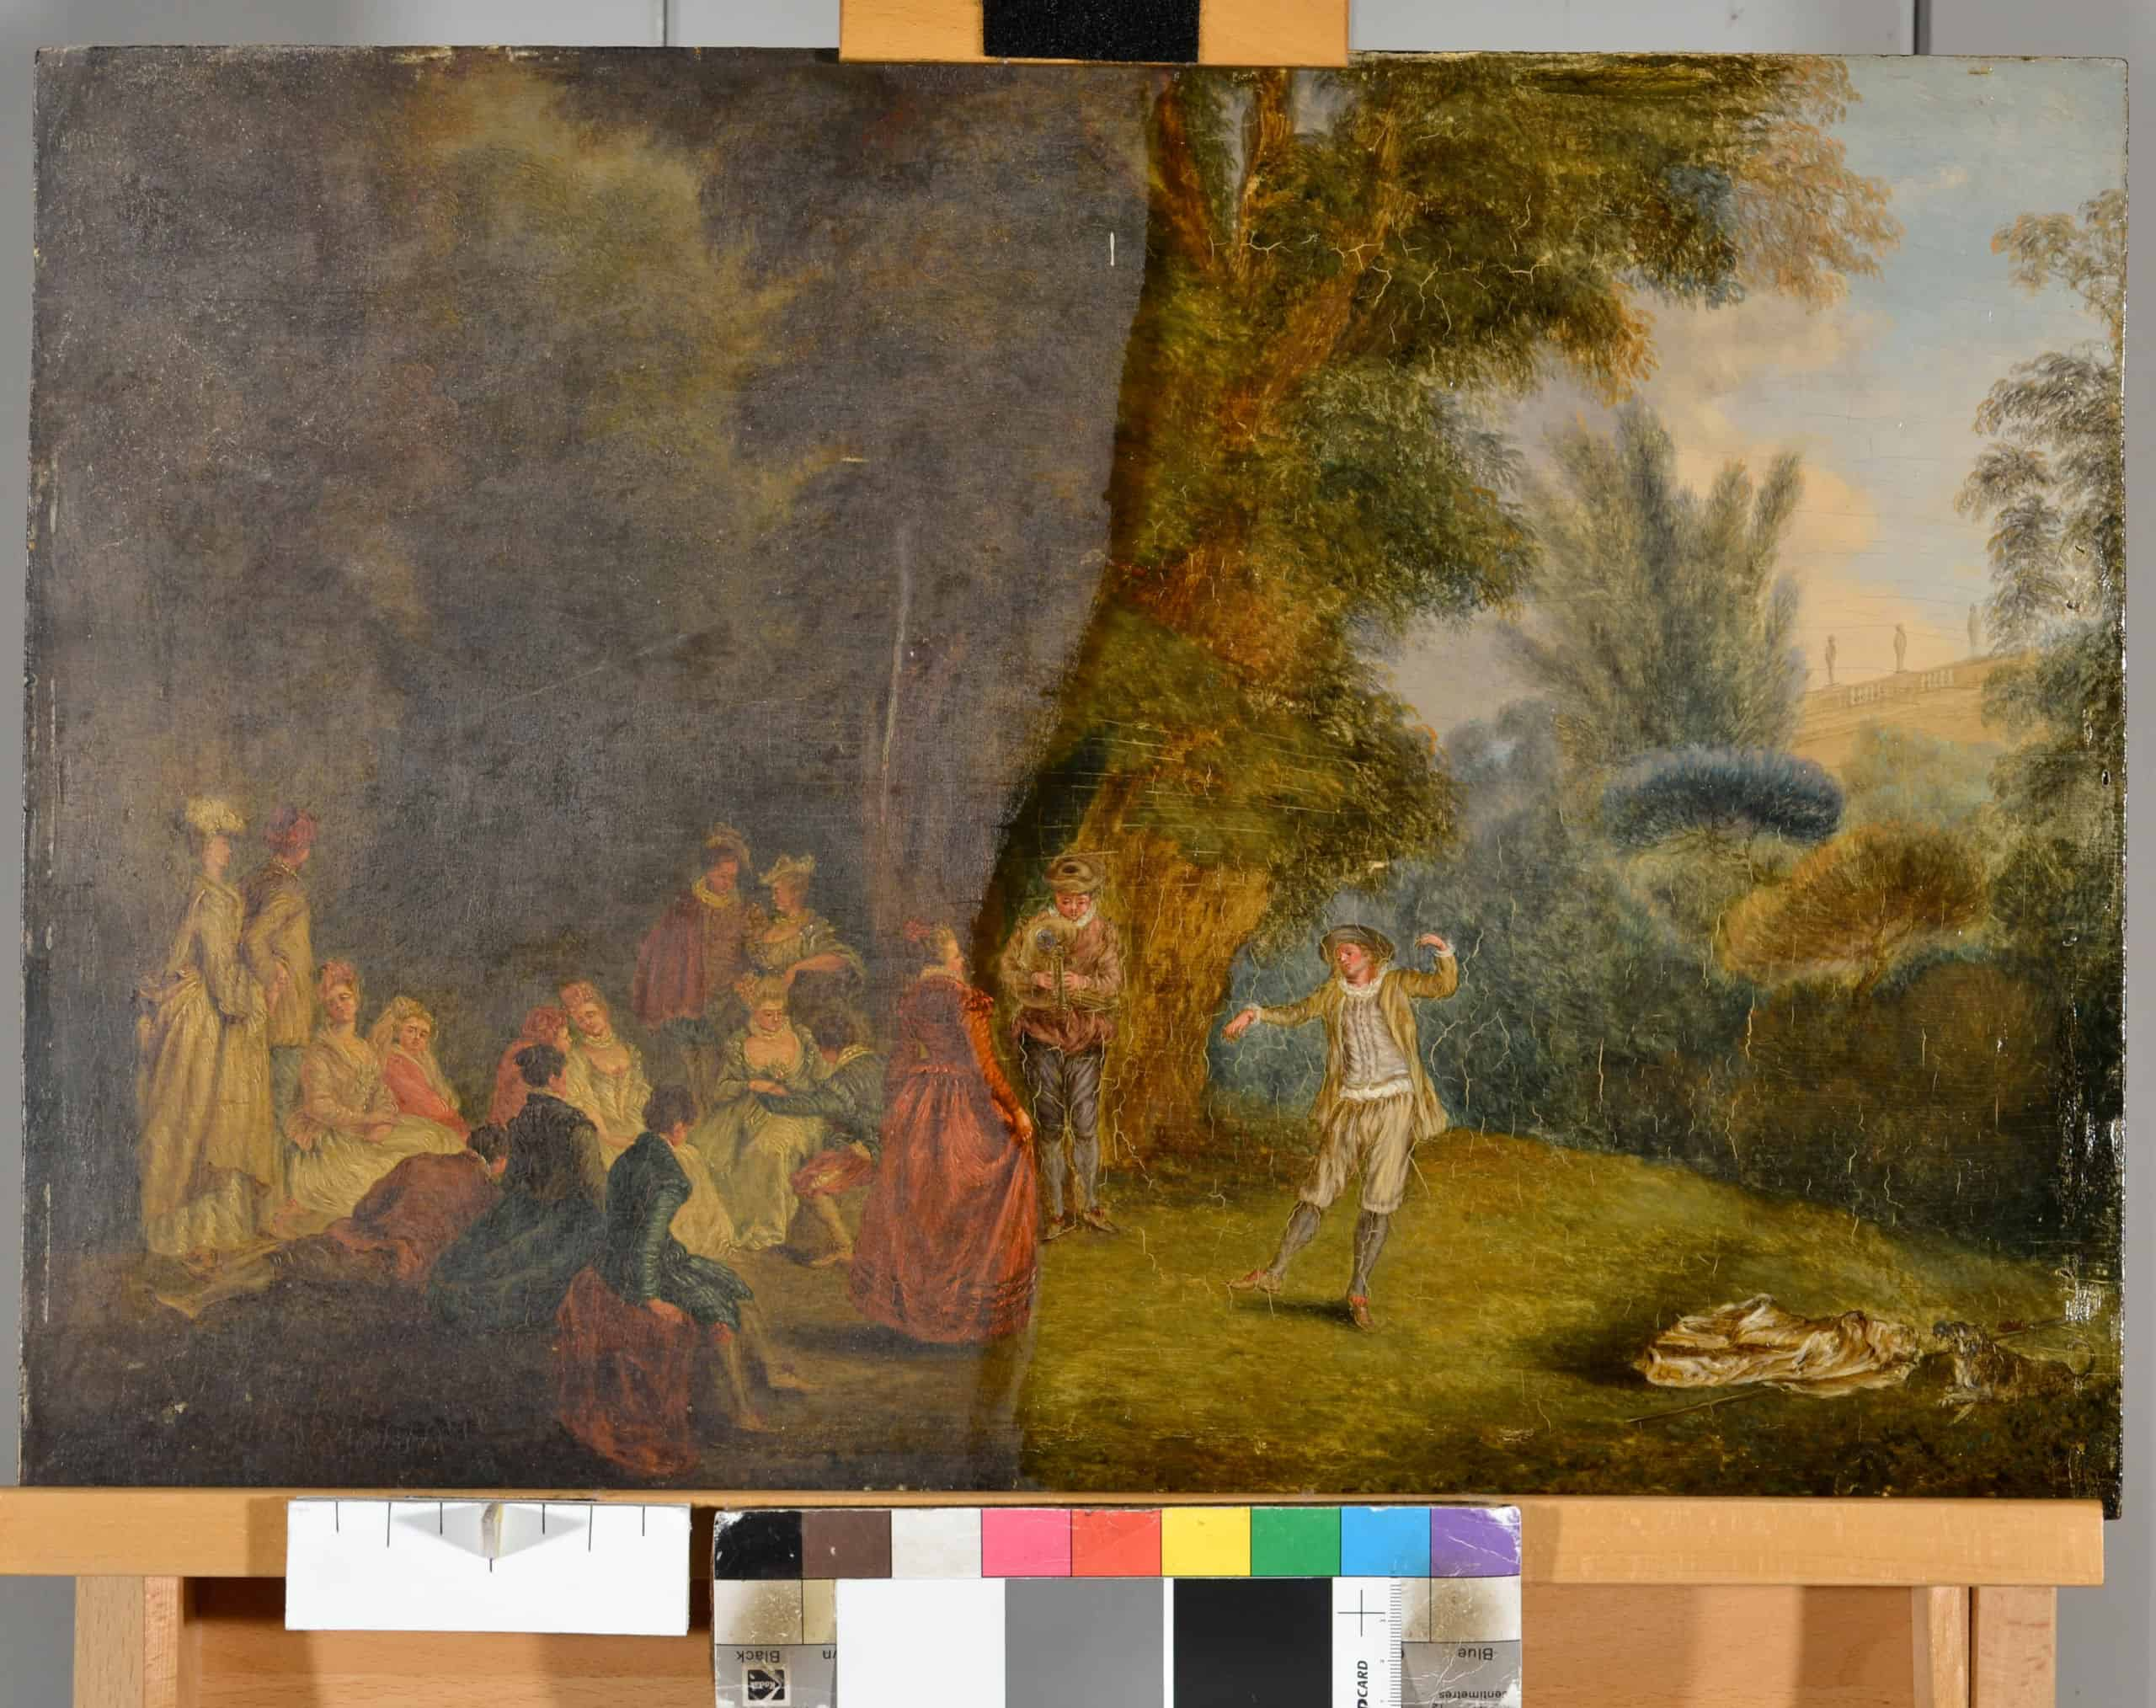 Art conservation expert insights demonstrate half-cleaned painting